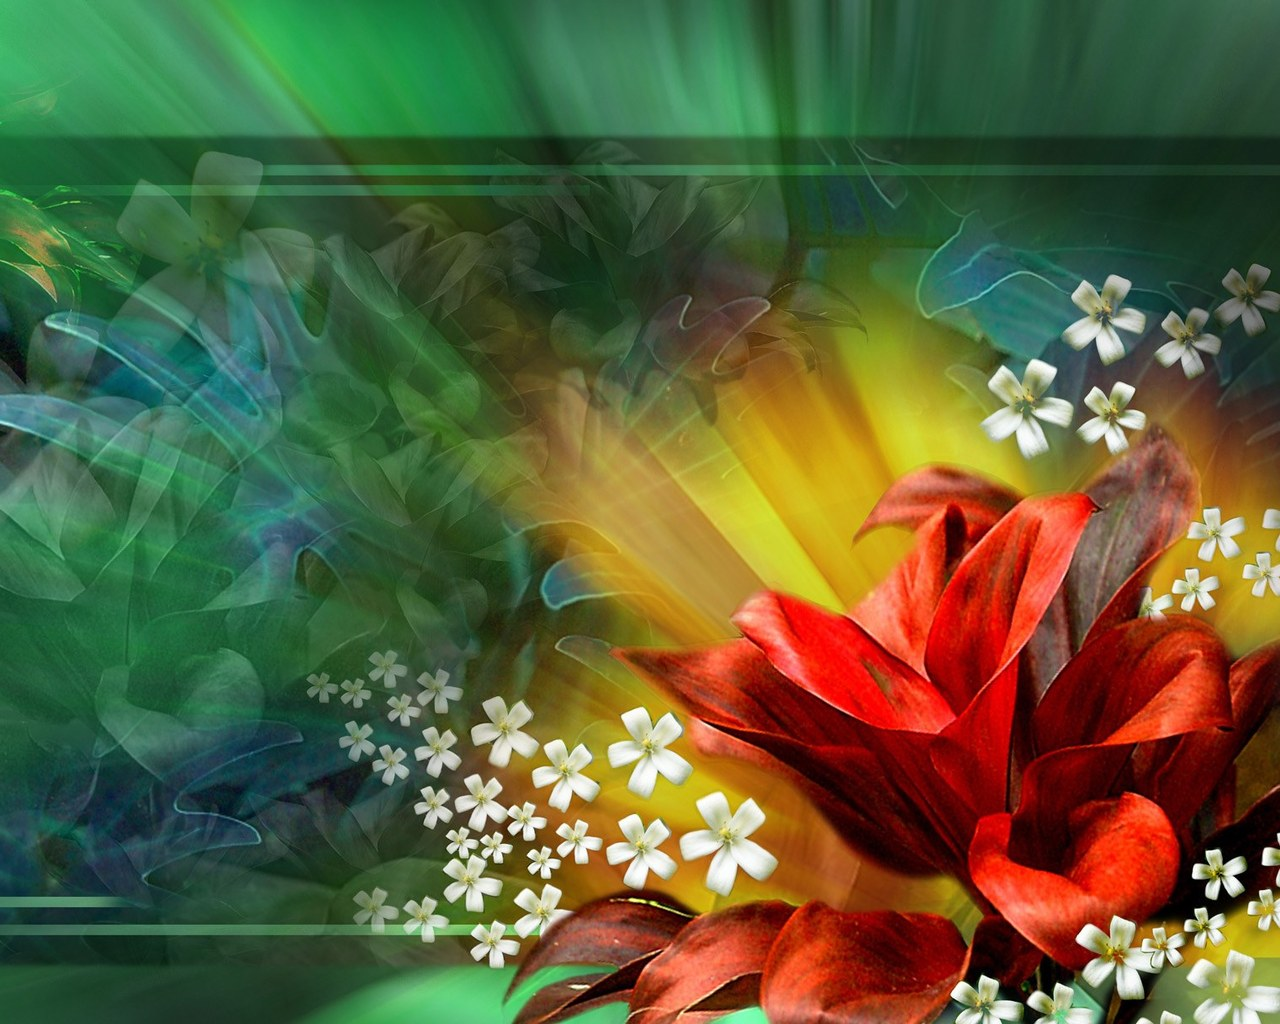 Abstract Free 3d Desktop Wallpaper Vista Wallpaper